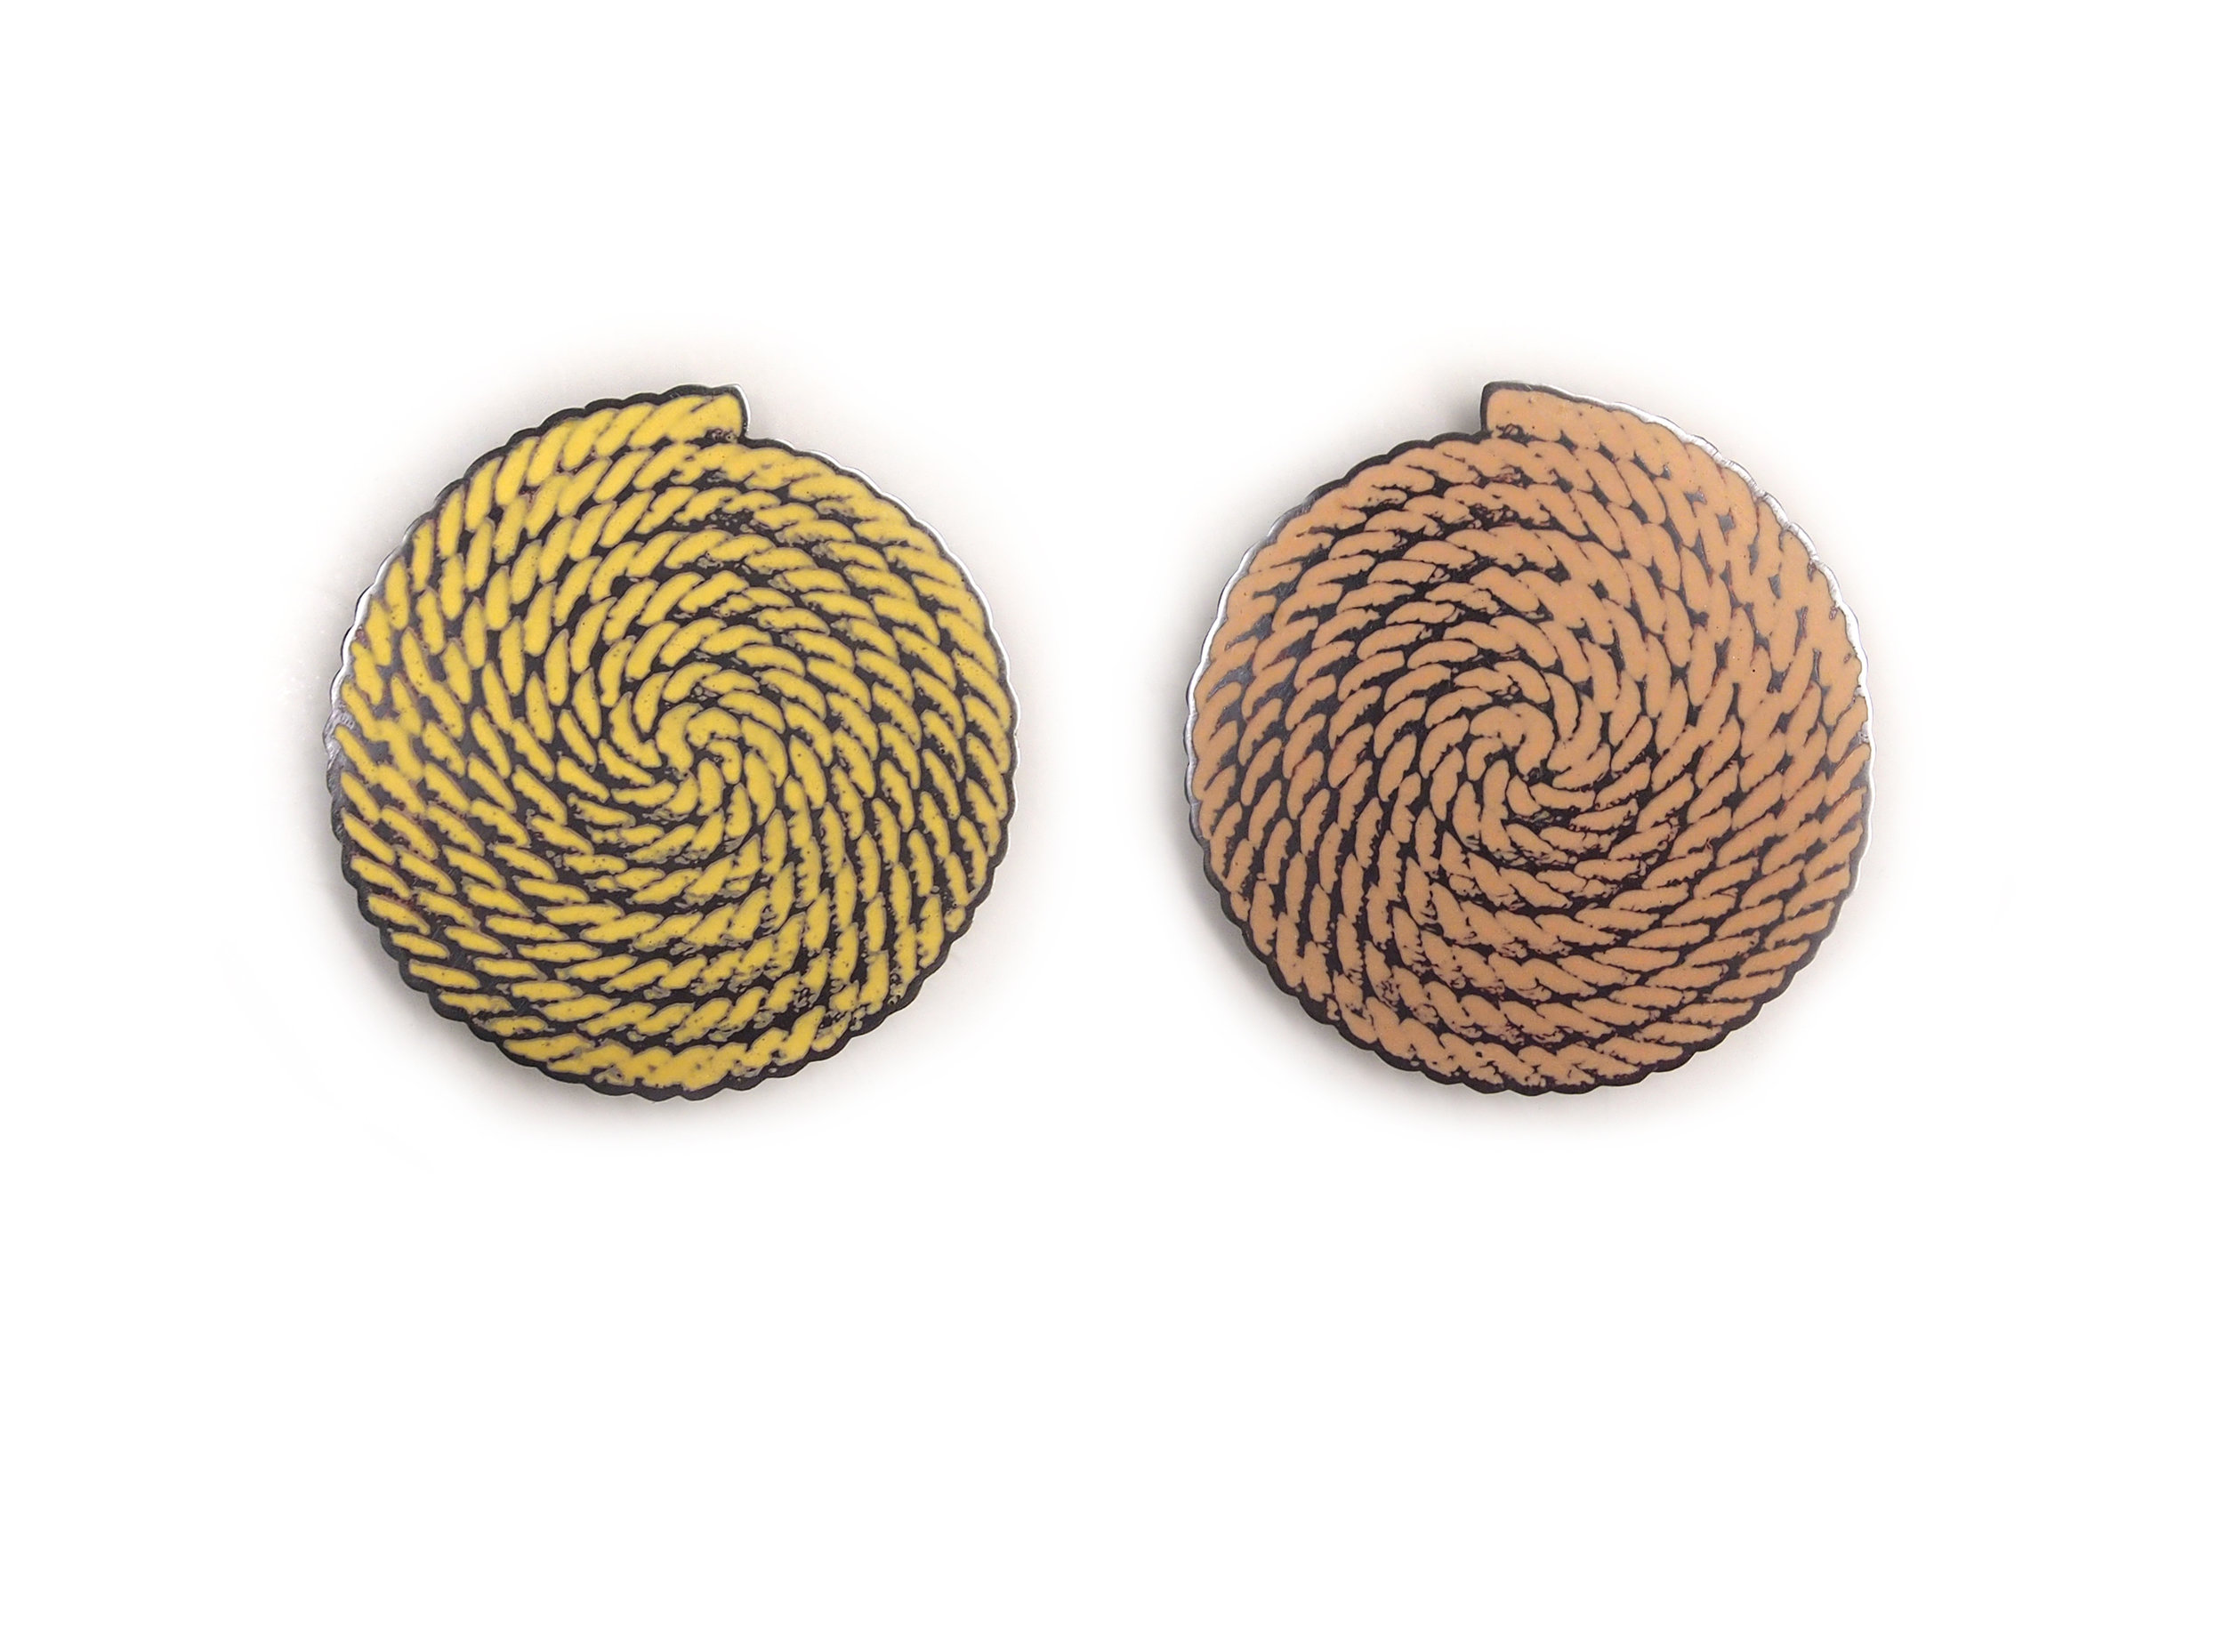 Massey_RopeBrooches1and2.jpg